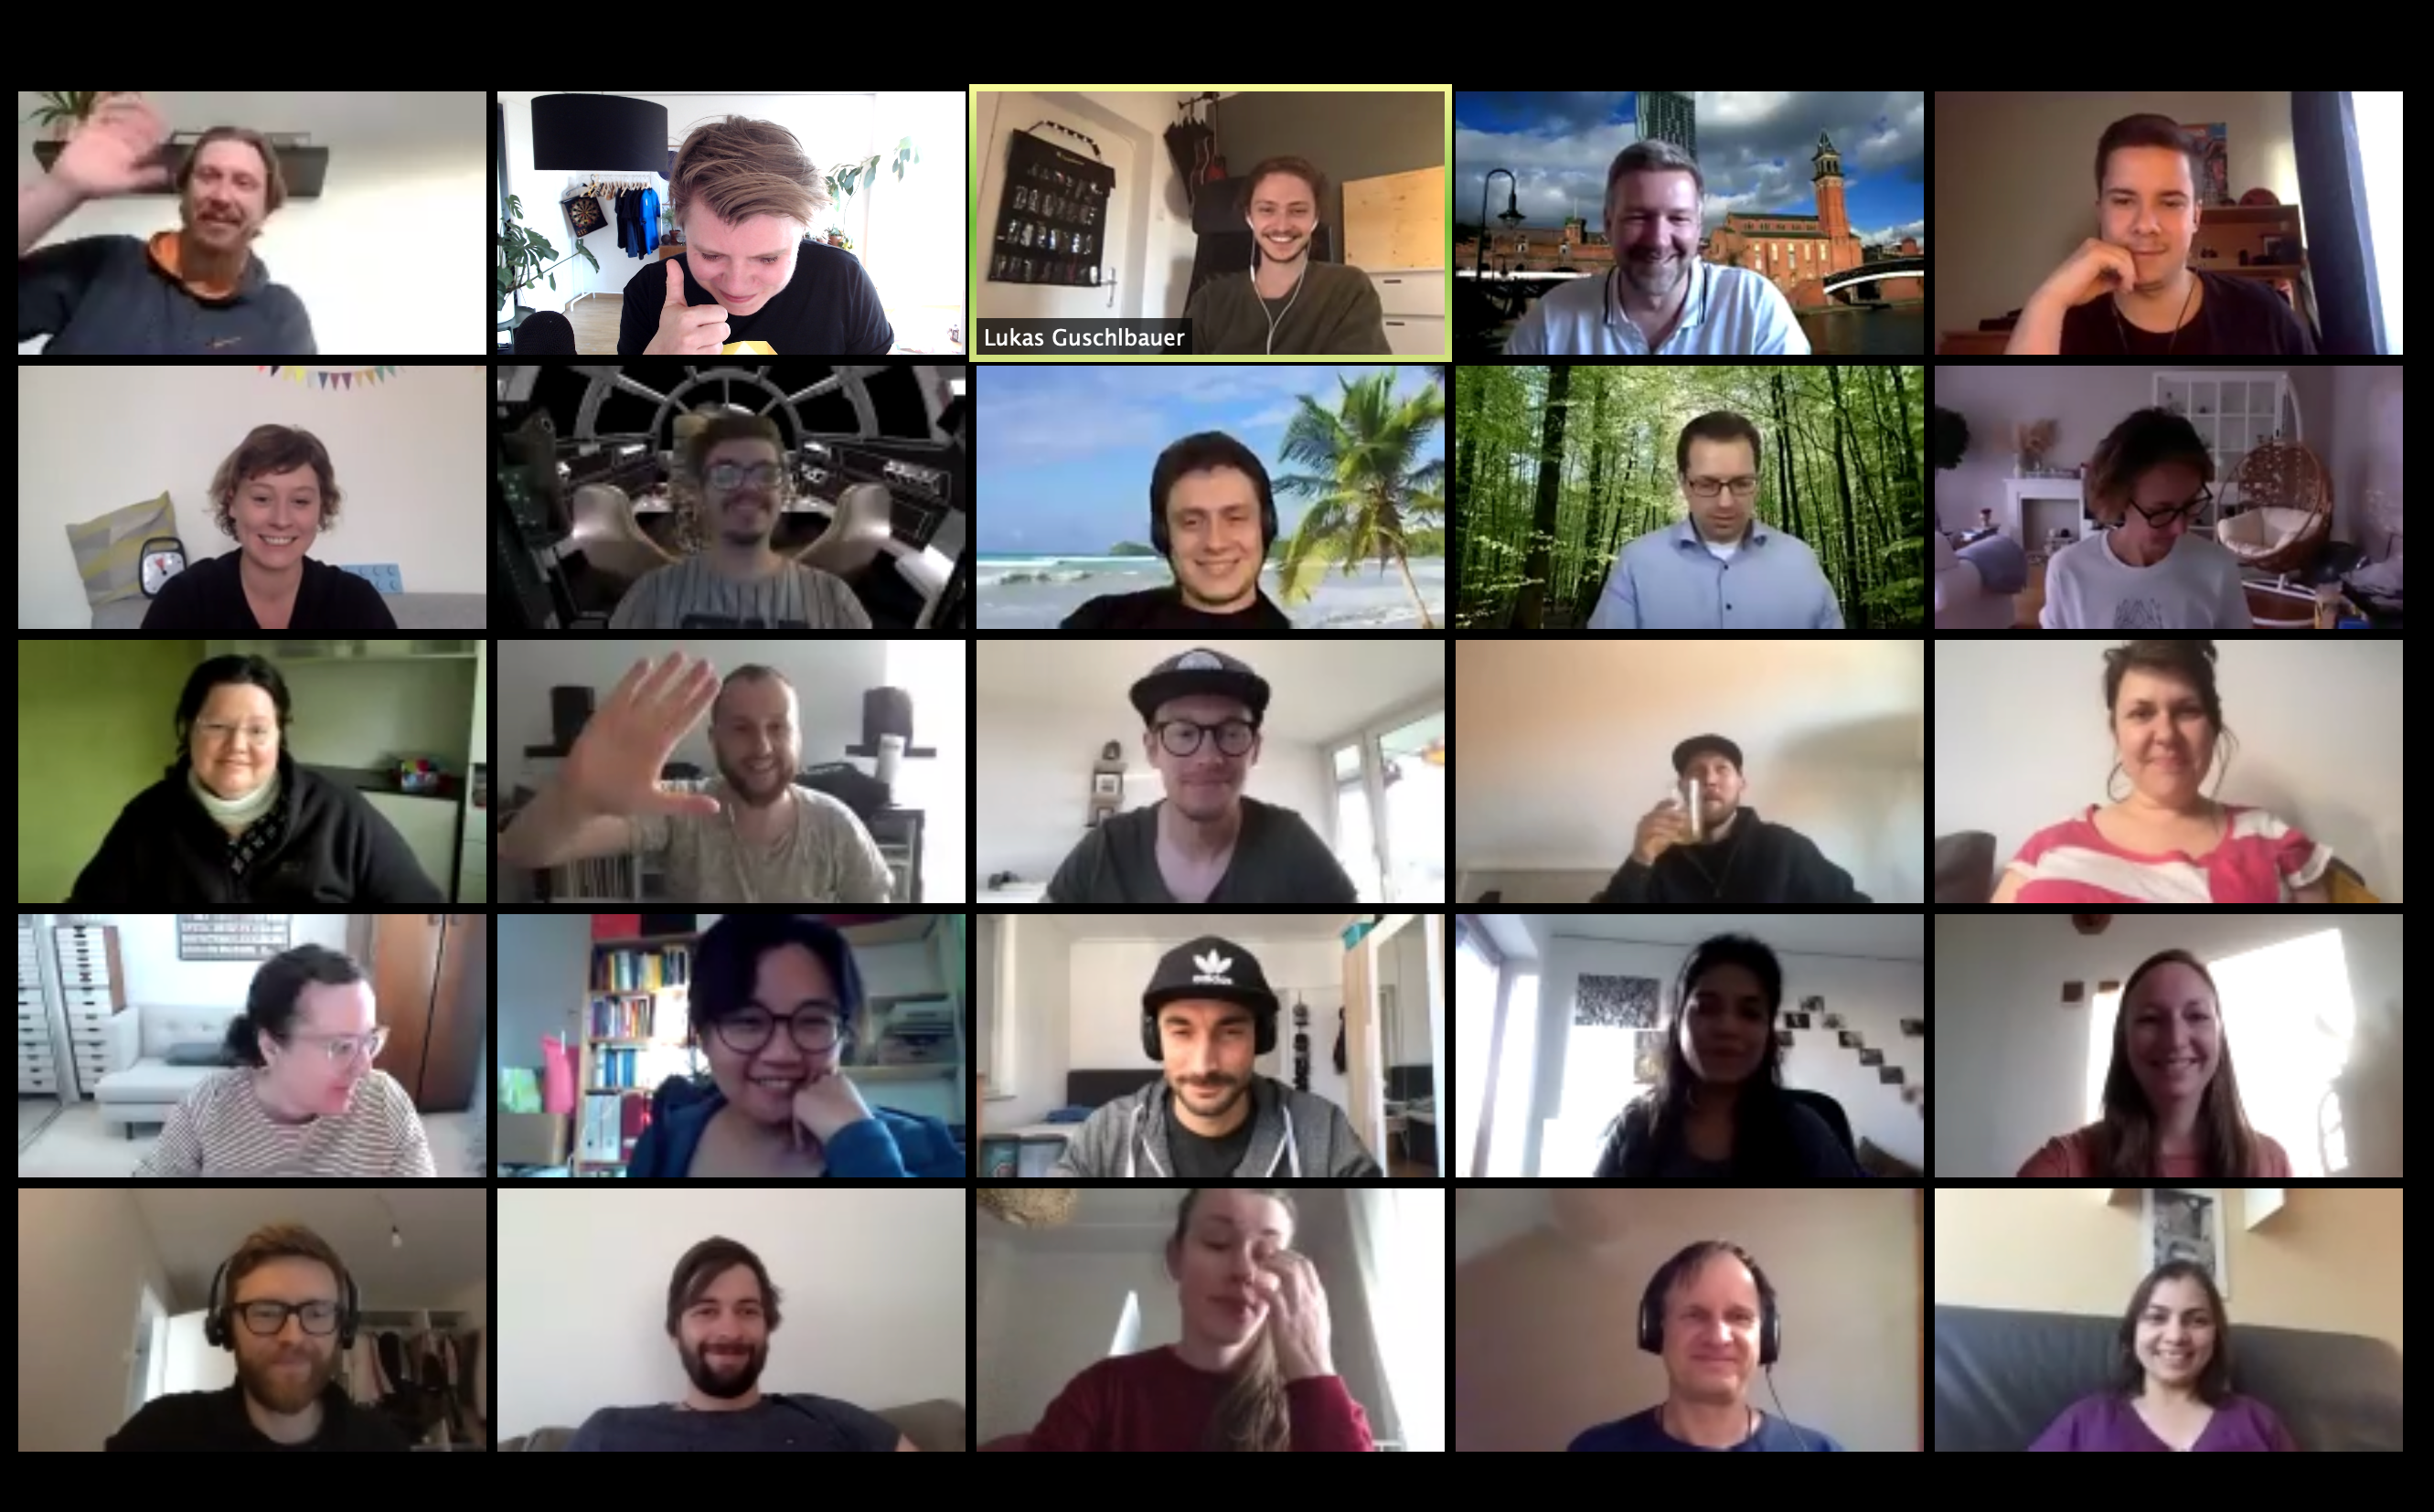 A screenshot taken from a Zoom call showing lots of users taking part in a meetup.